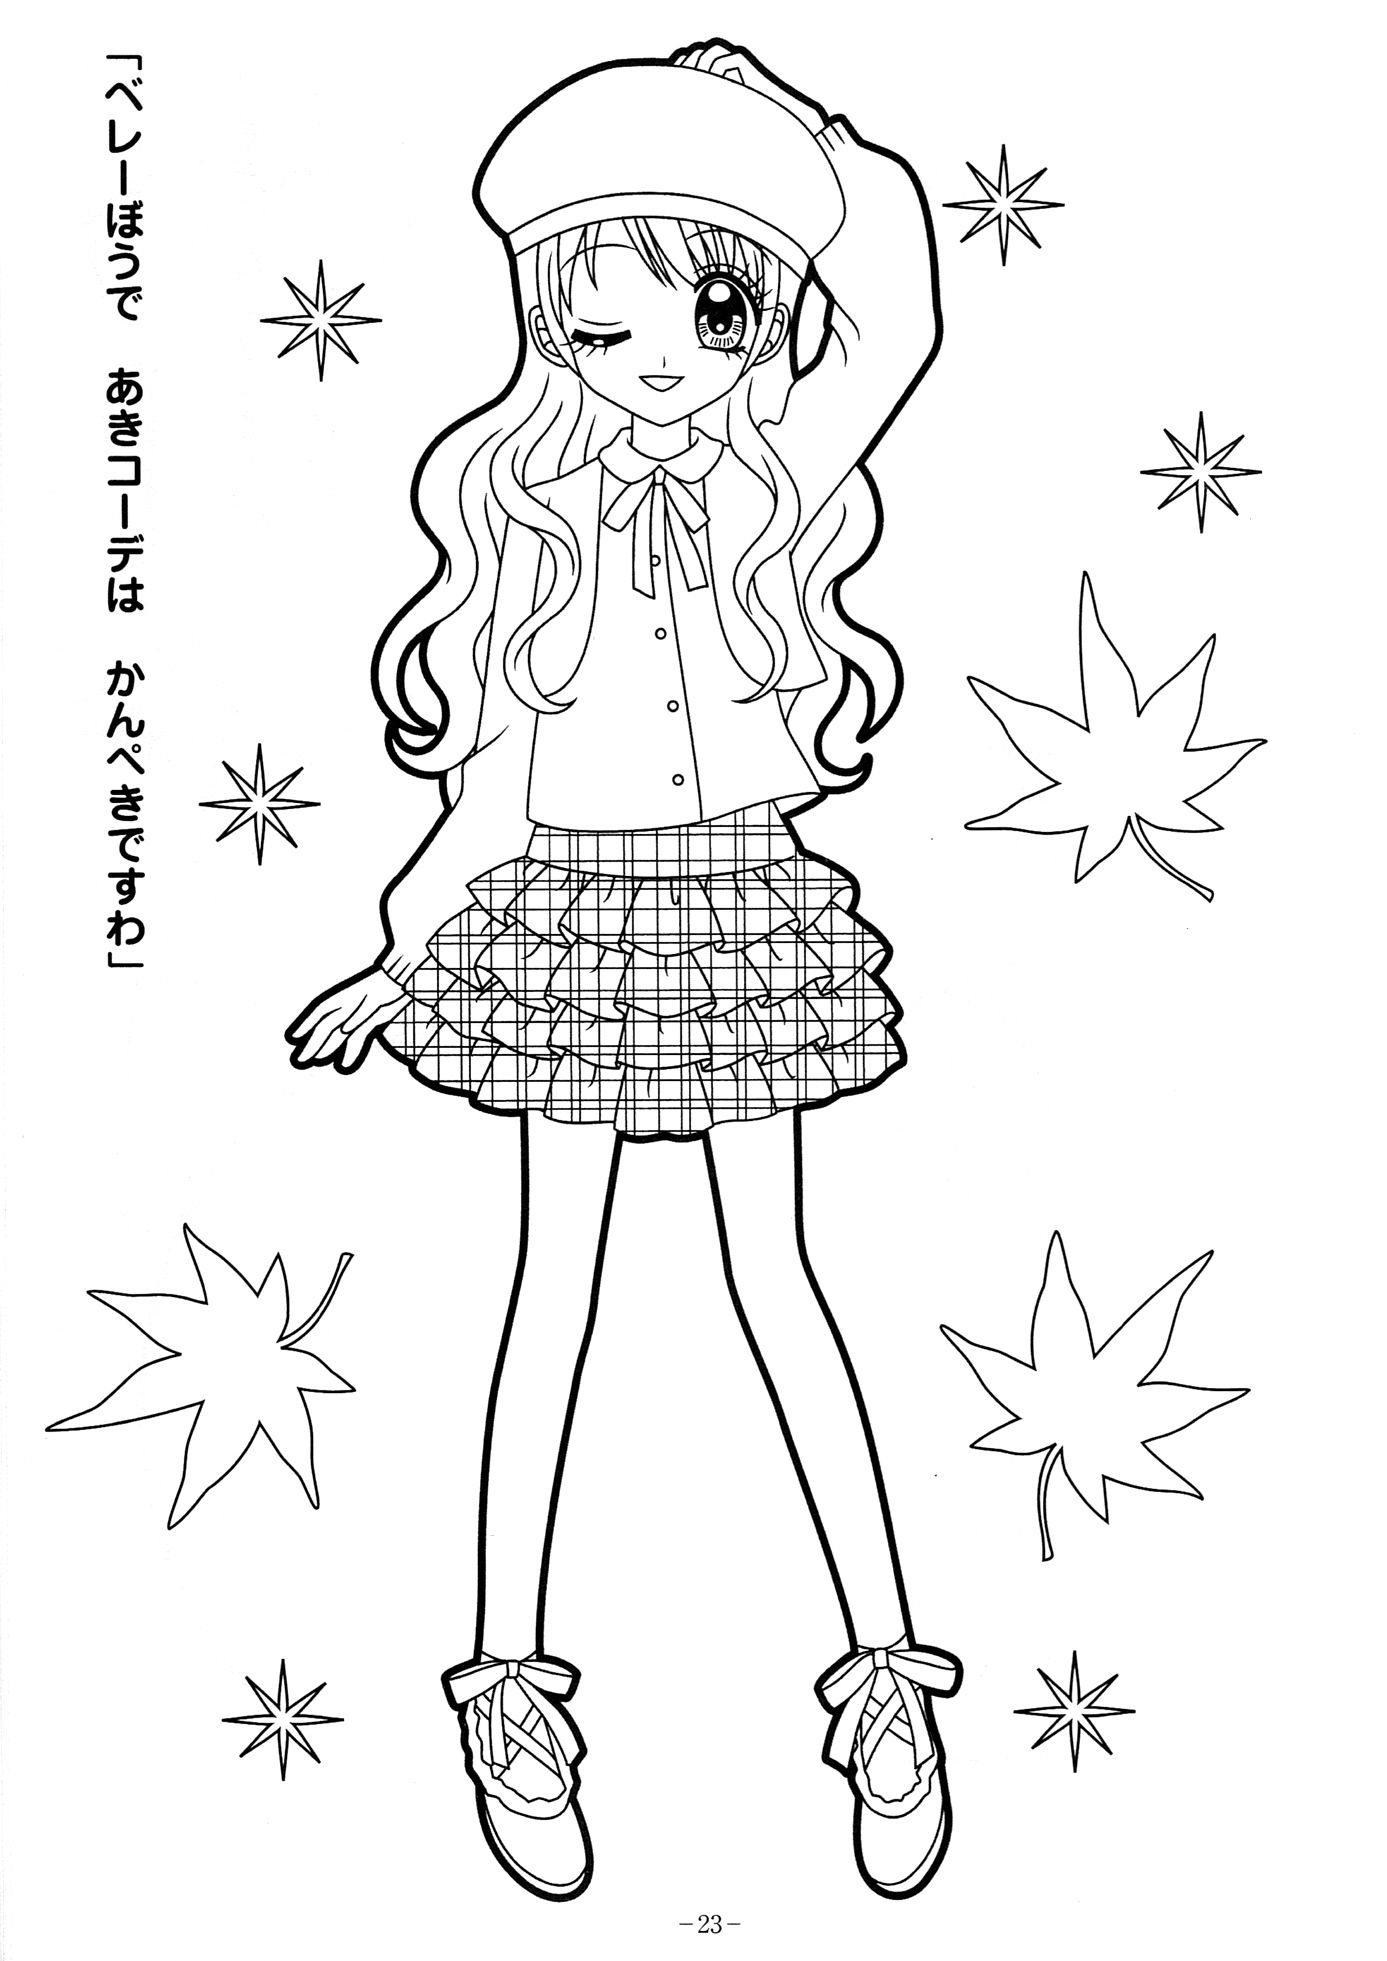 anime colouring pages for kids to print